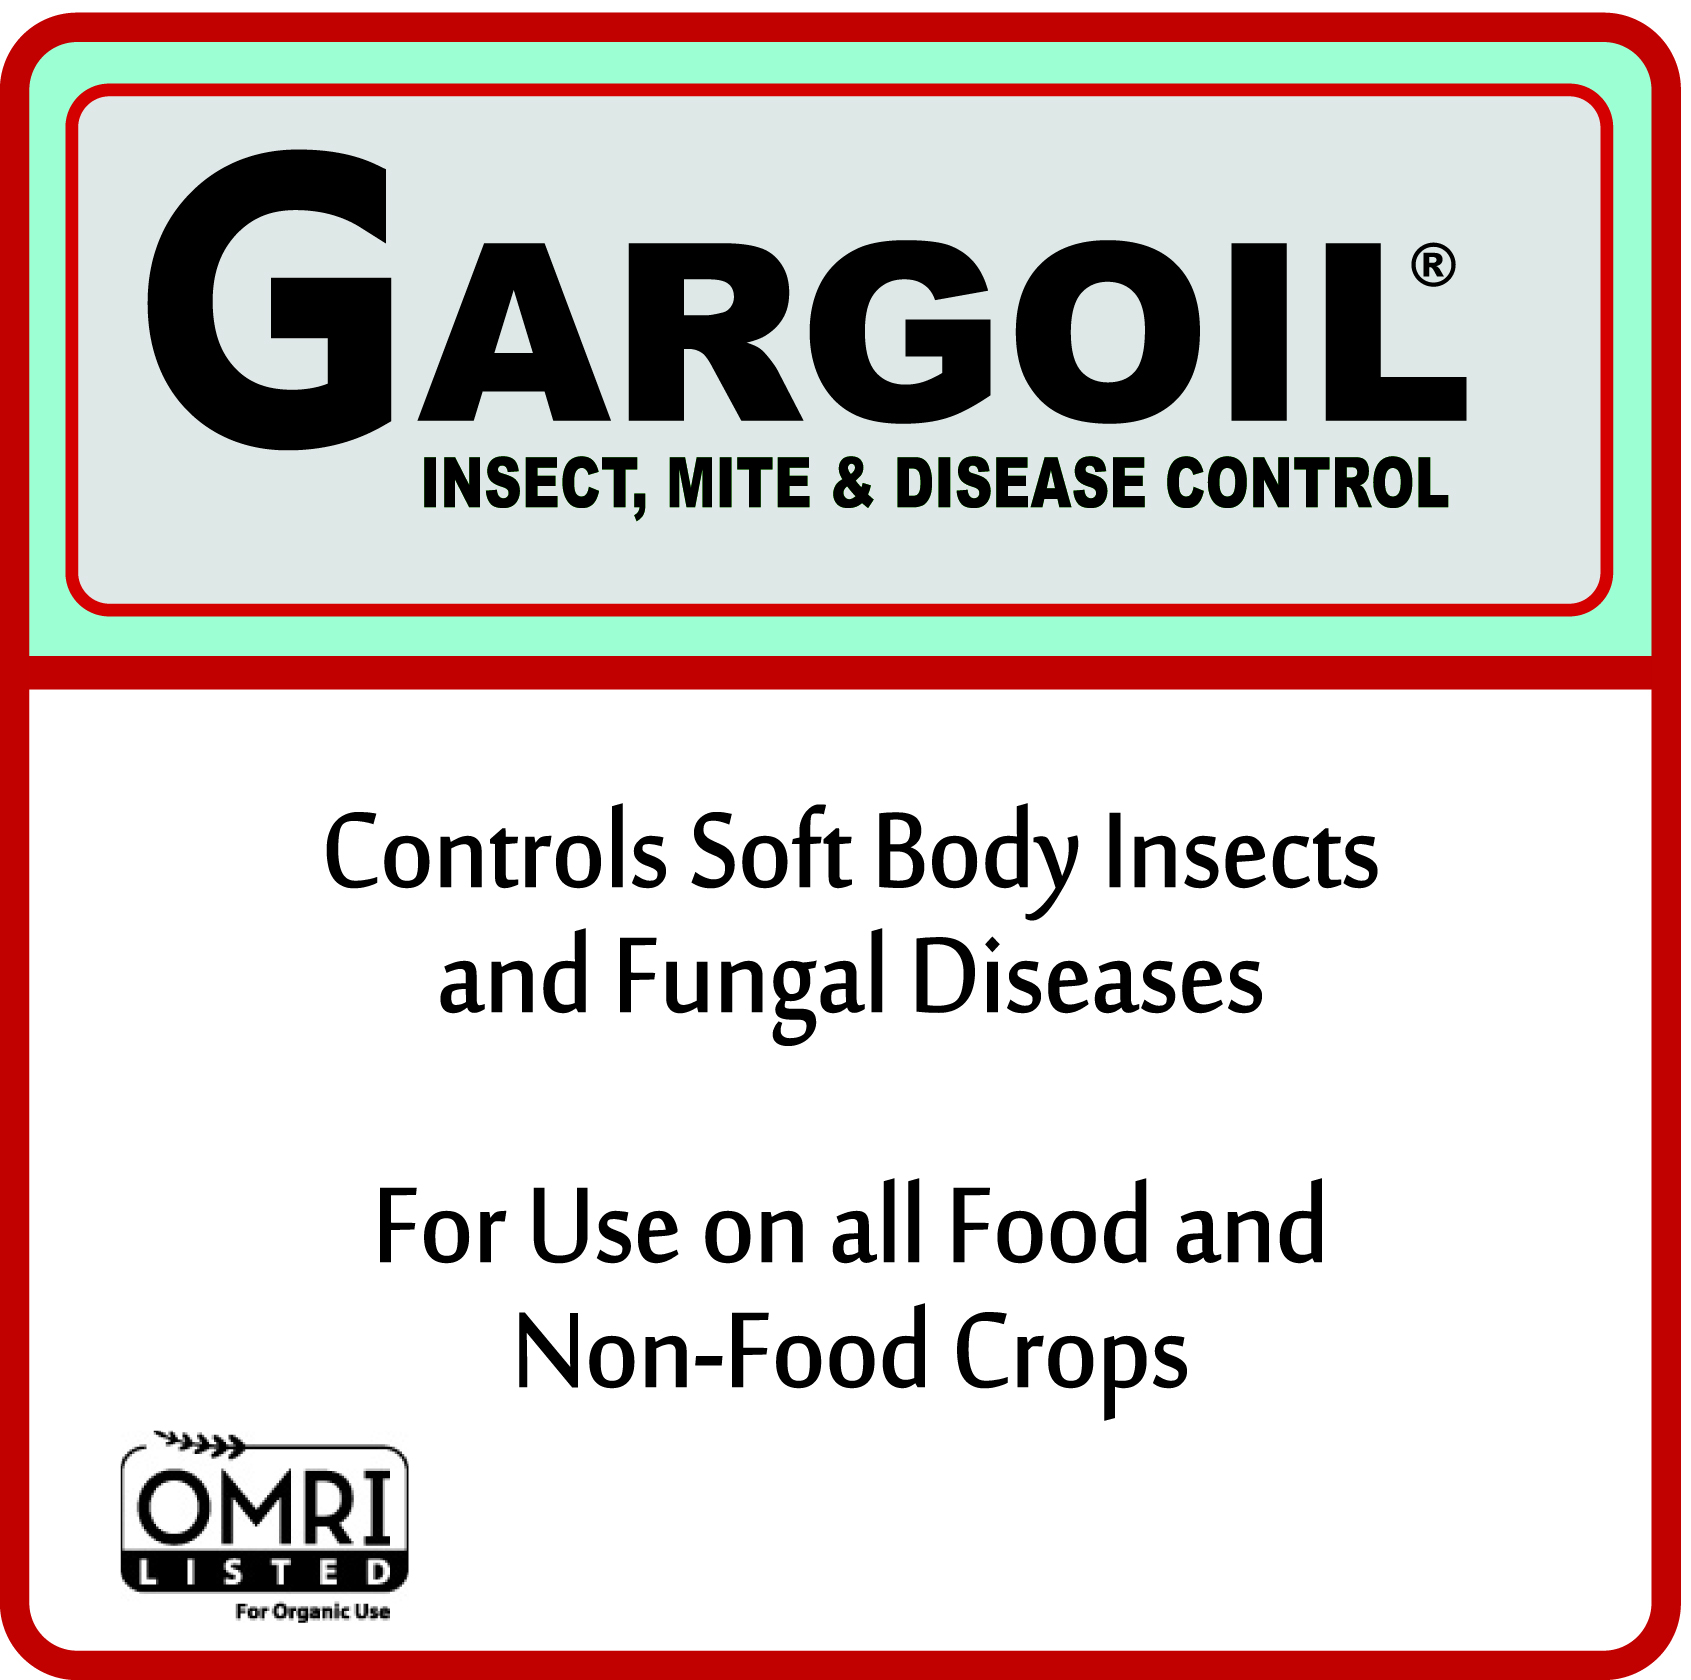 GARGOIL® INSECT, MITE & DISEASE CONTROL